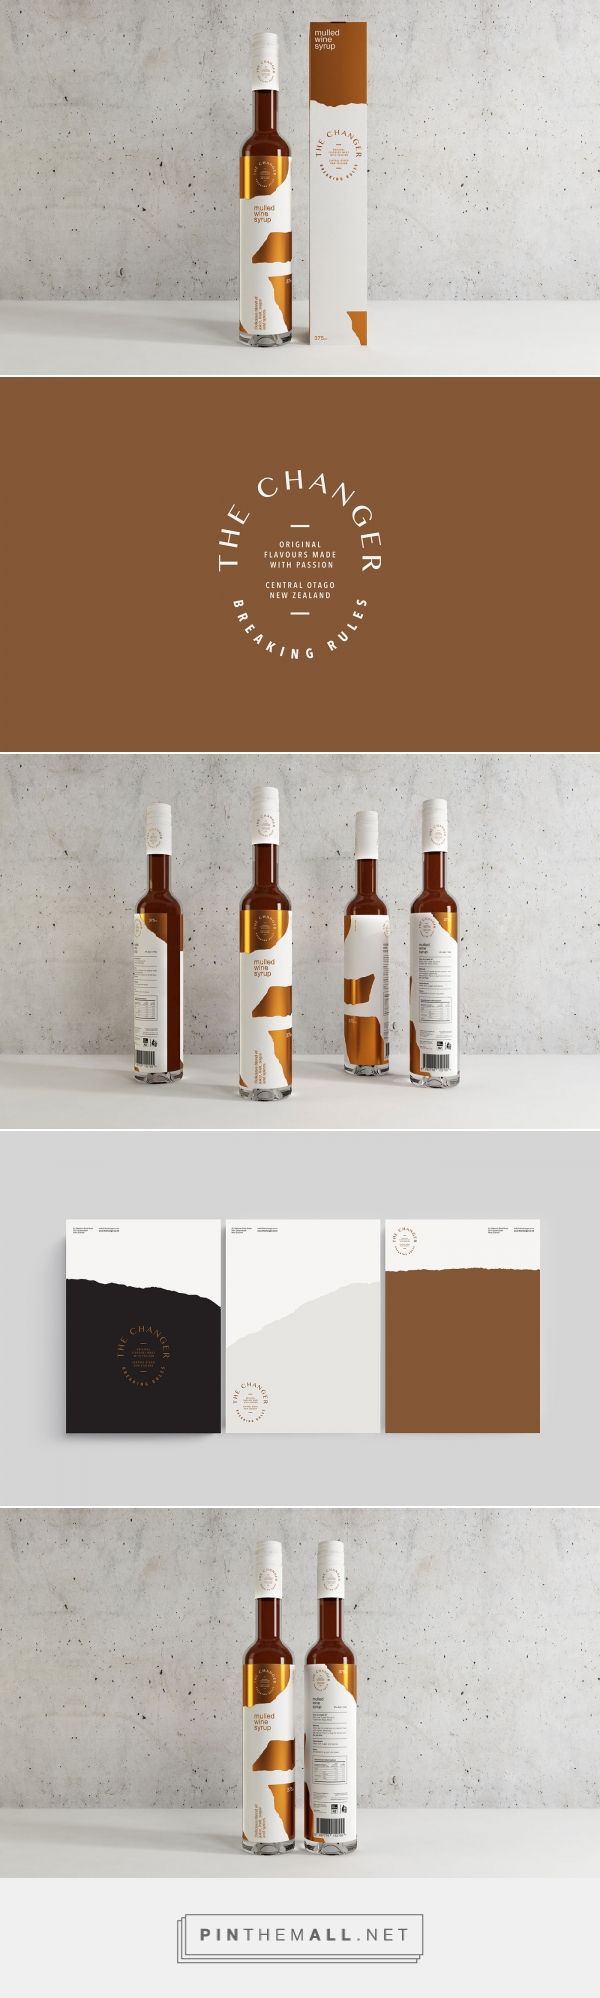 The Changer Mulled Wine Syrup Packaging by Makebardo | Fivestar Branding Agency – Design and Branding Agency & Curated Inspiration Gallery